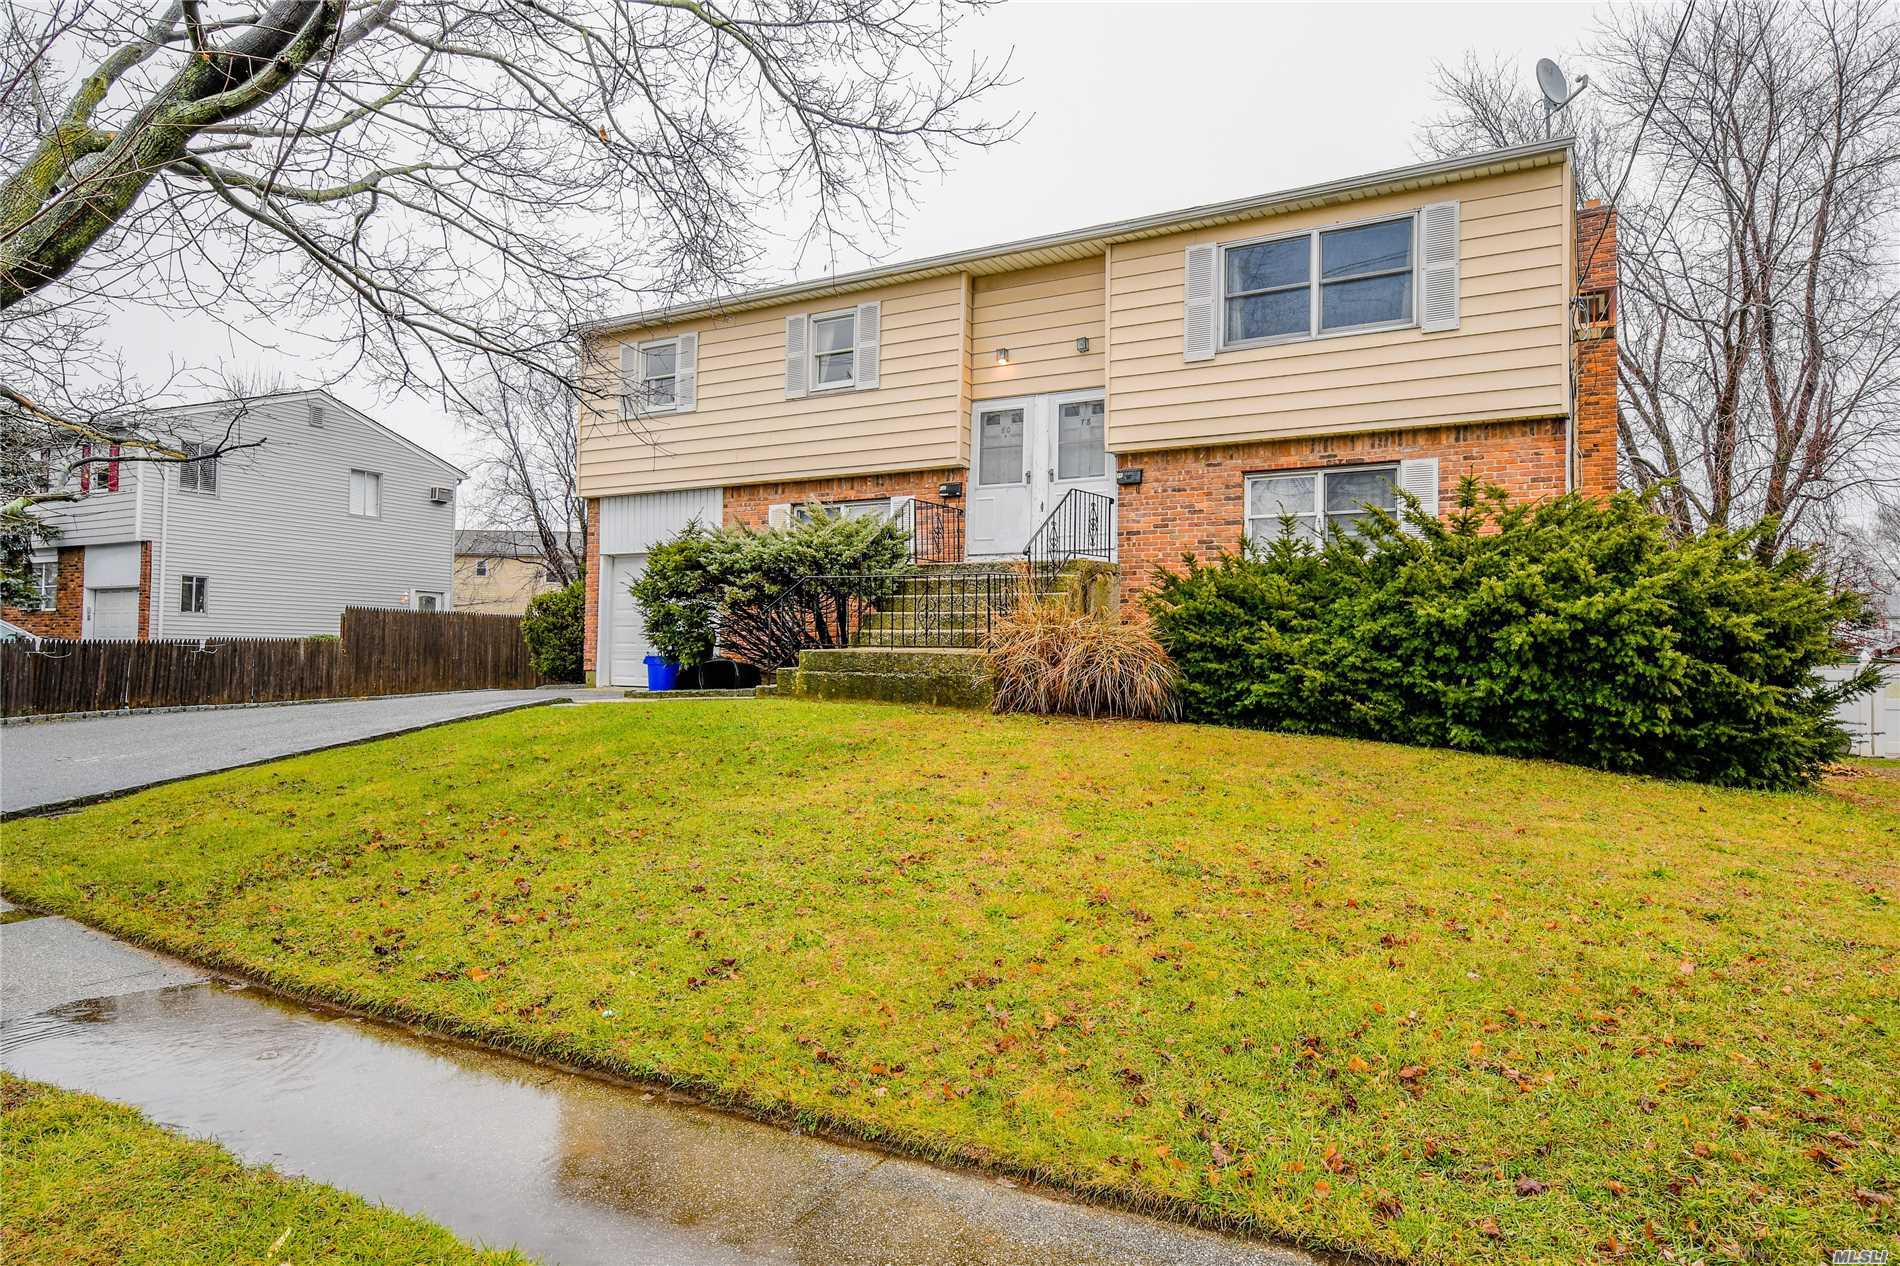 Great Rent Rolls! Magnificent Legal 2 Non Owner Occupied, 2 Separate Electric Meters. Great Rent Roll. Full Finished & Updated Basement With Ose. Majority Of The House Has Been Renovated. Wide Driveway & Plenty Of Onsite Parking. Great Investment Opportunity/Income. 11 Mins Walk To Train Station. Mins. To Downtown Farmingdale. Move In Condition. This Will Not Last Long.